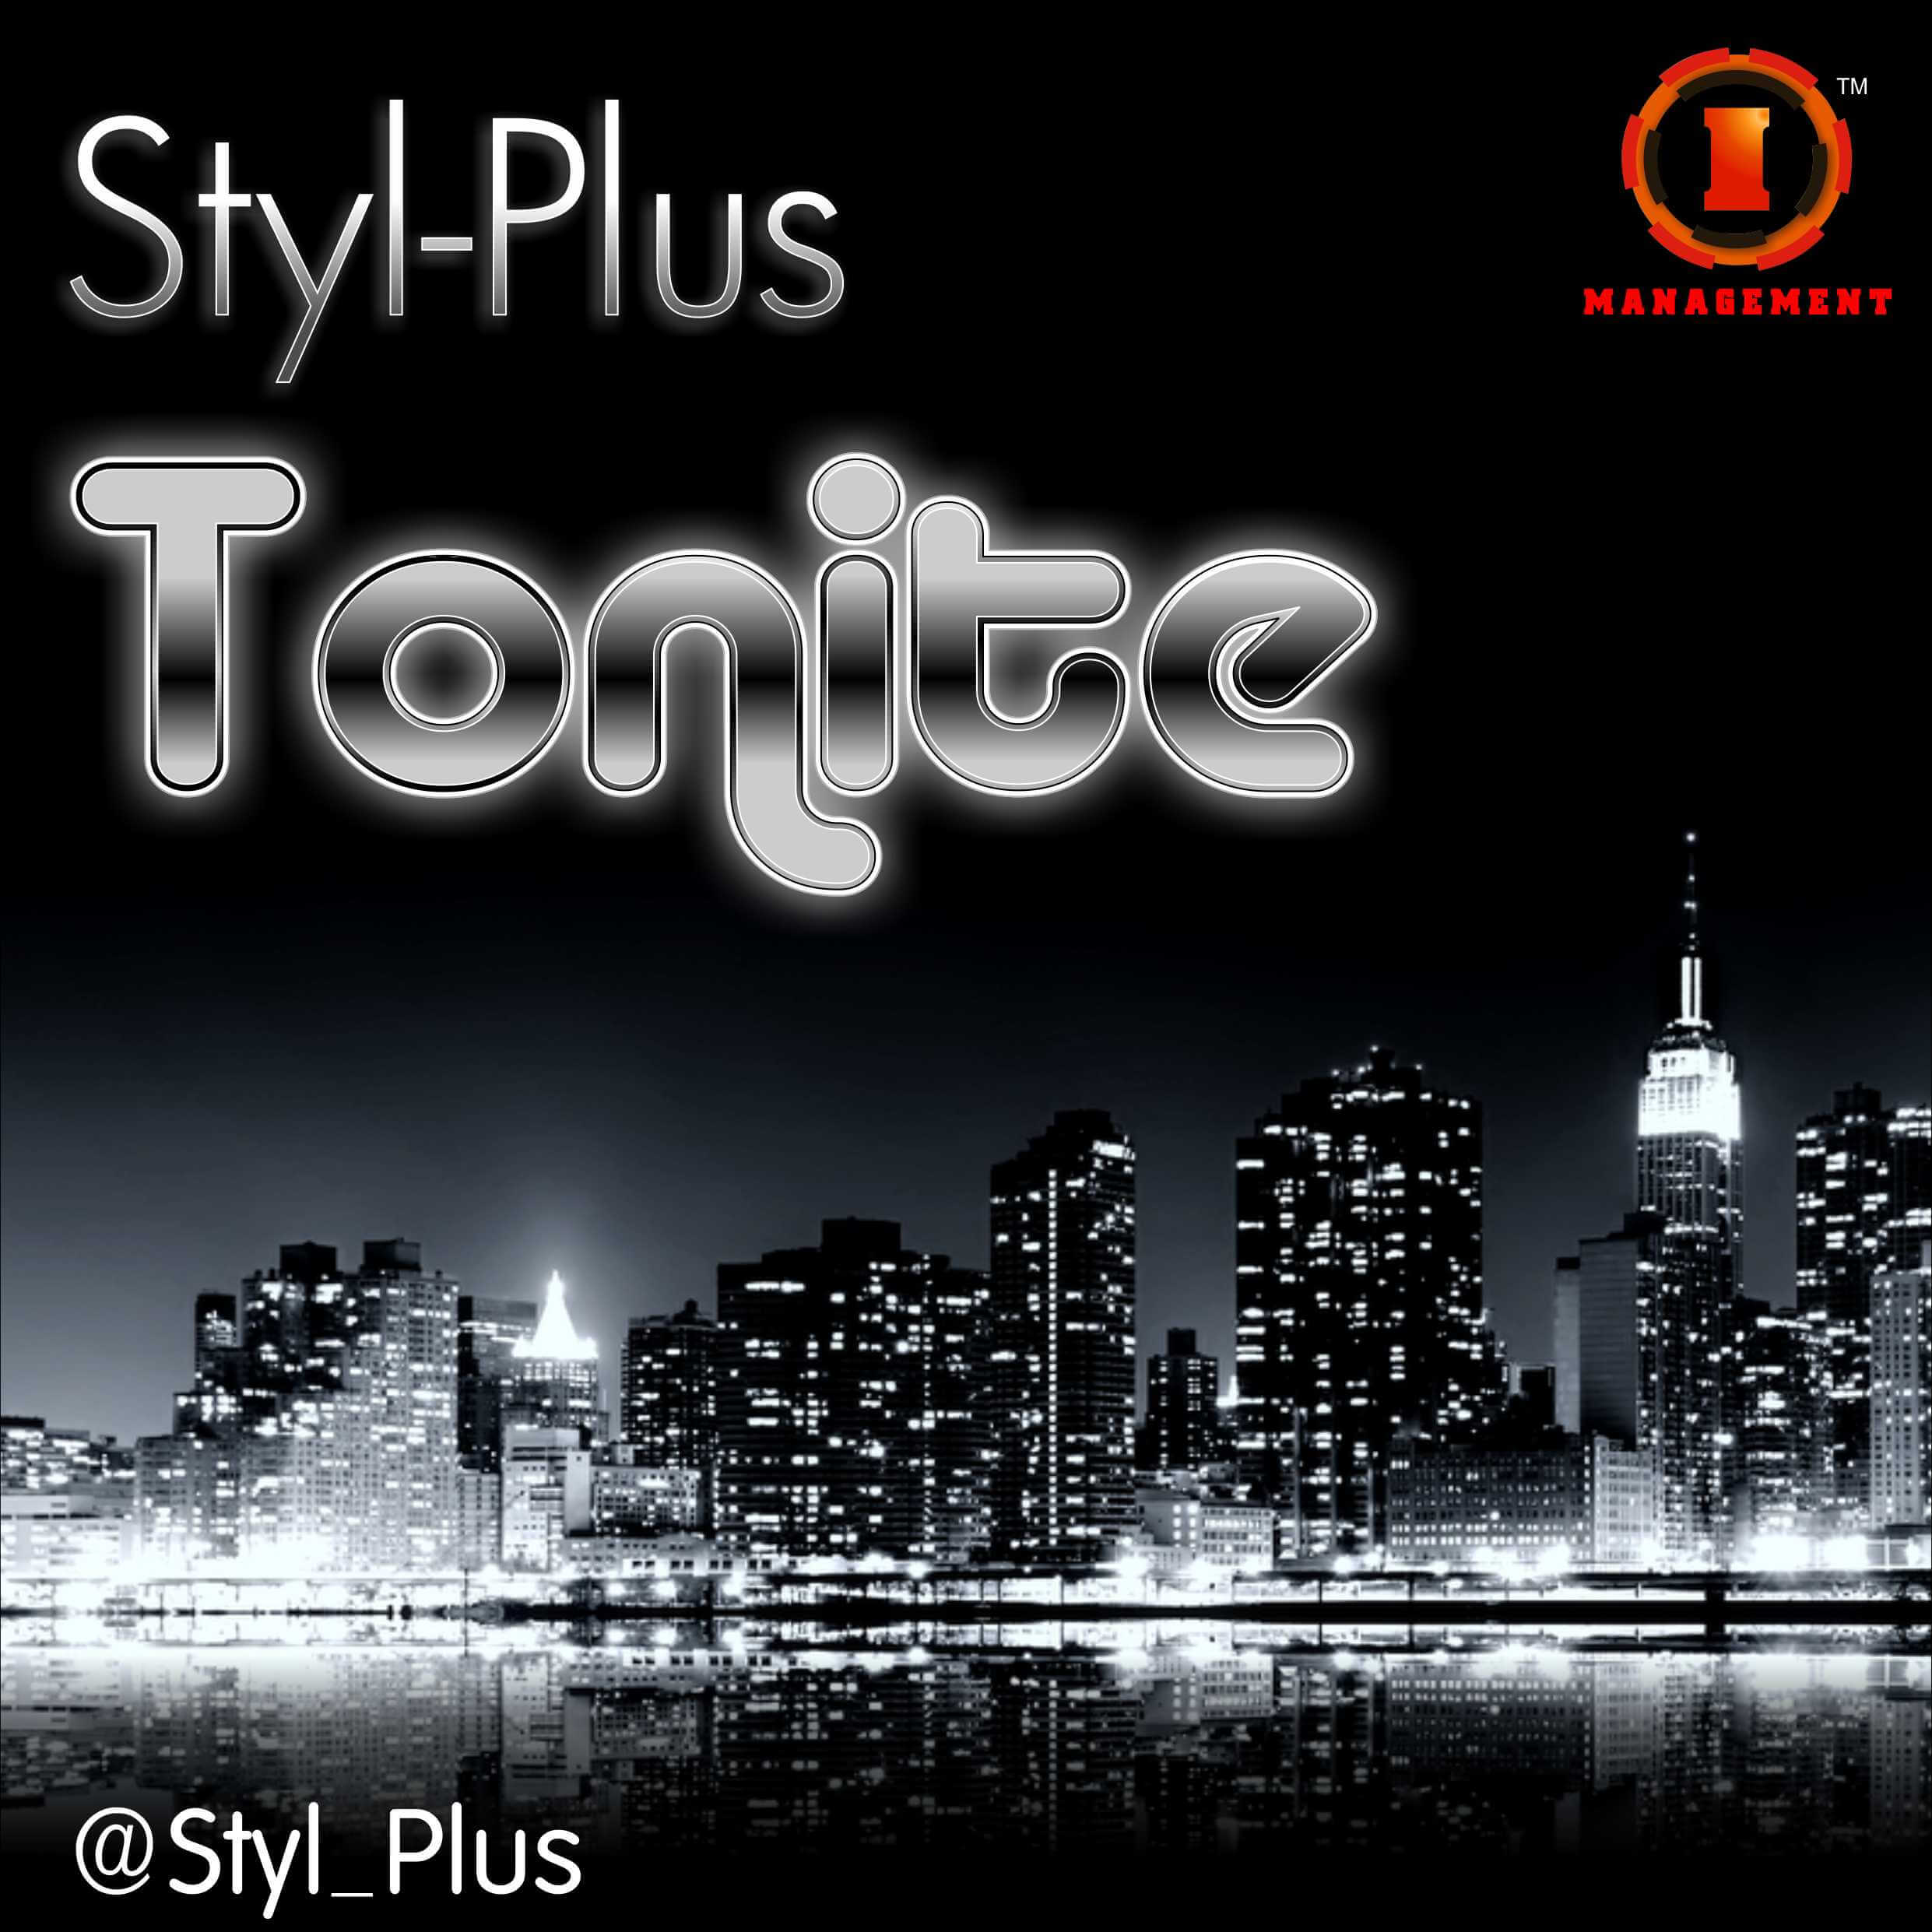 Styl-Plus-tonite-2